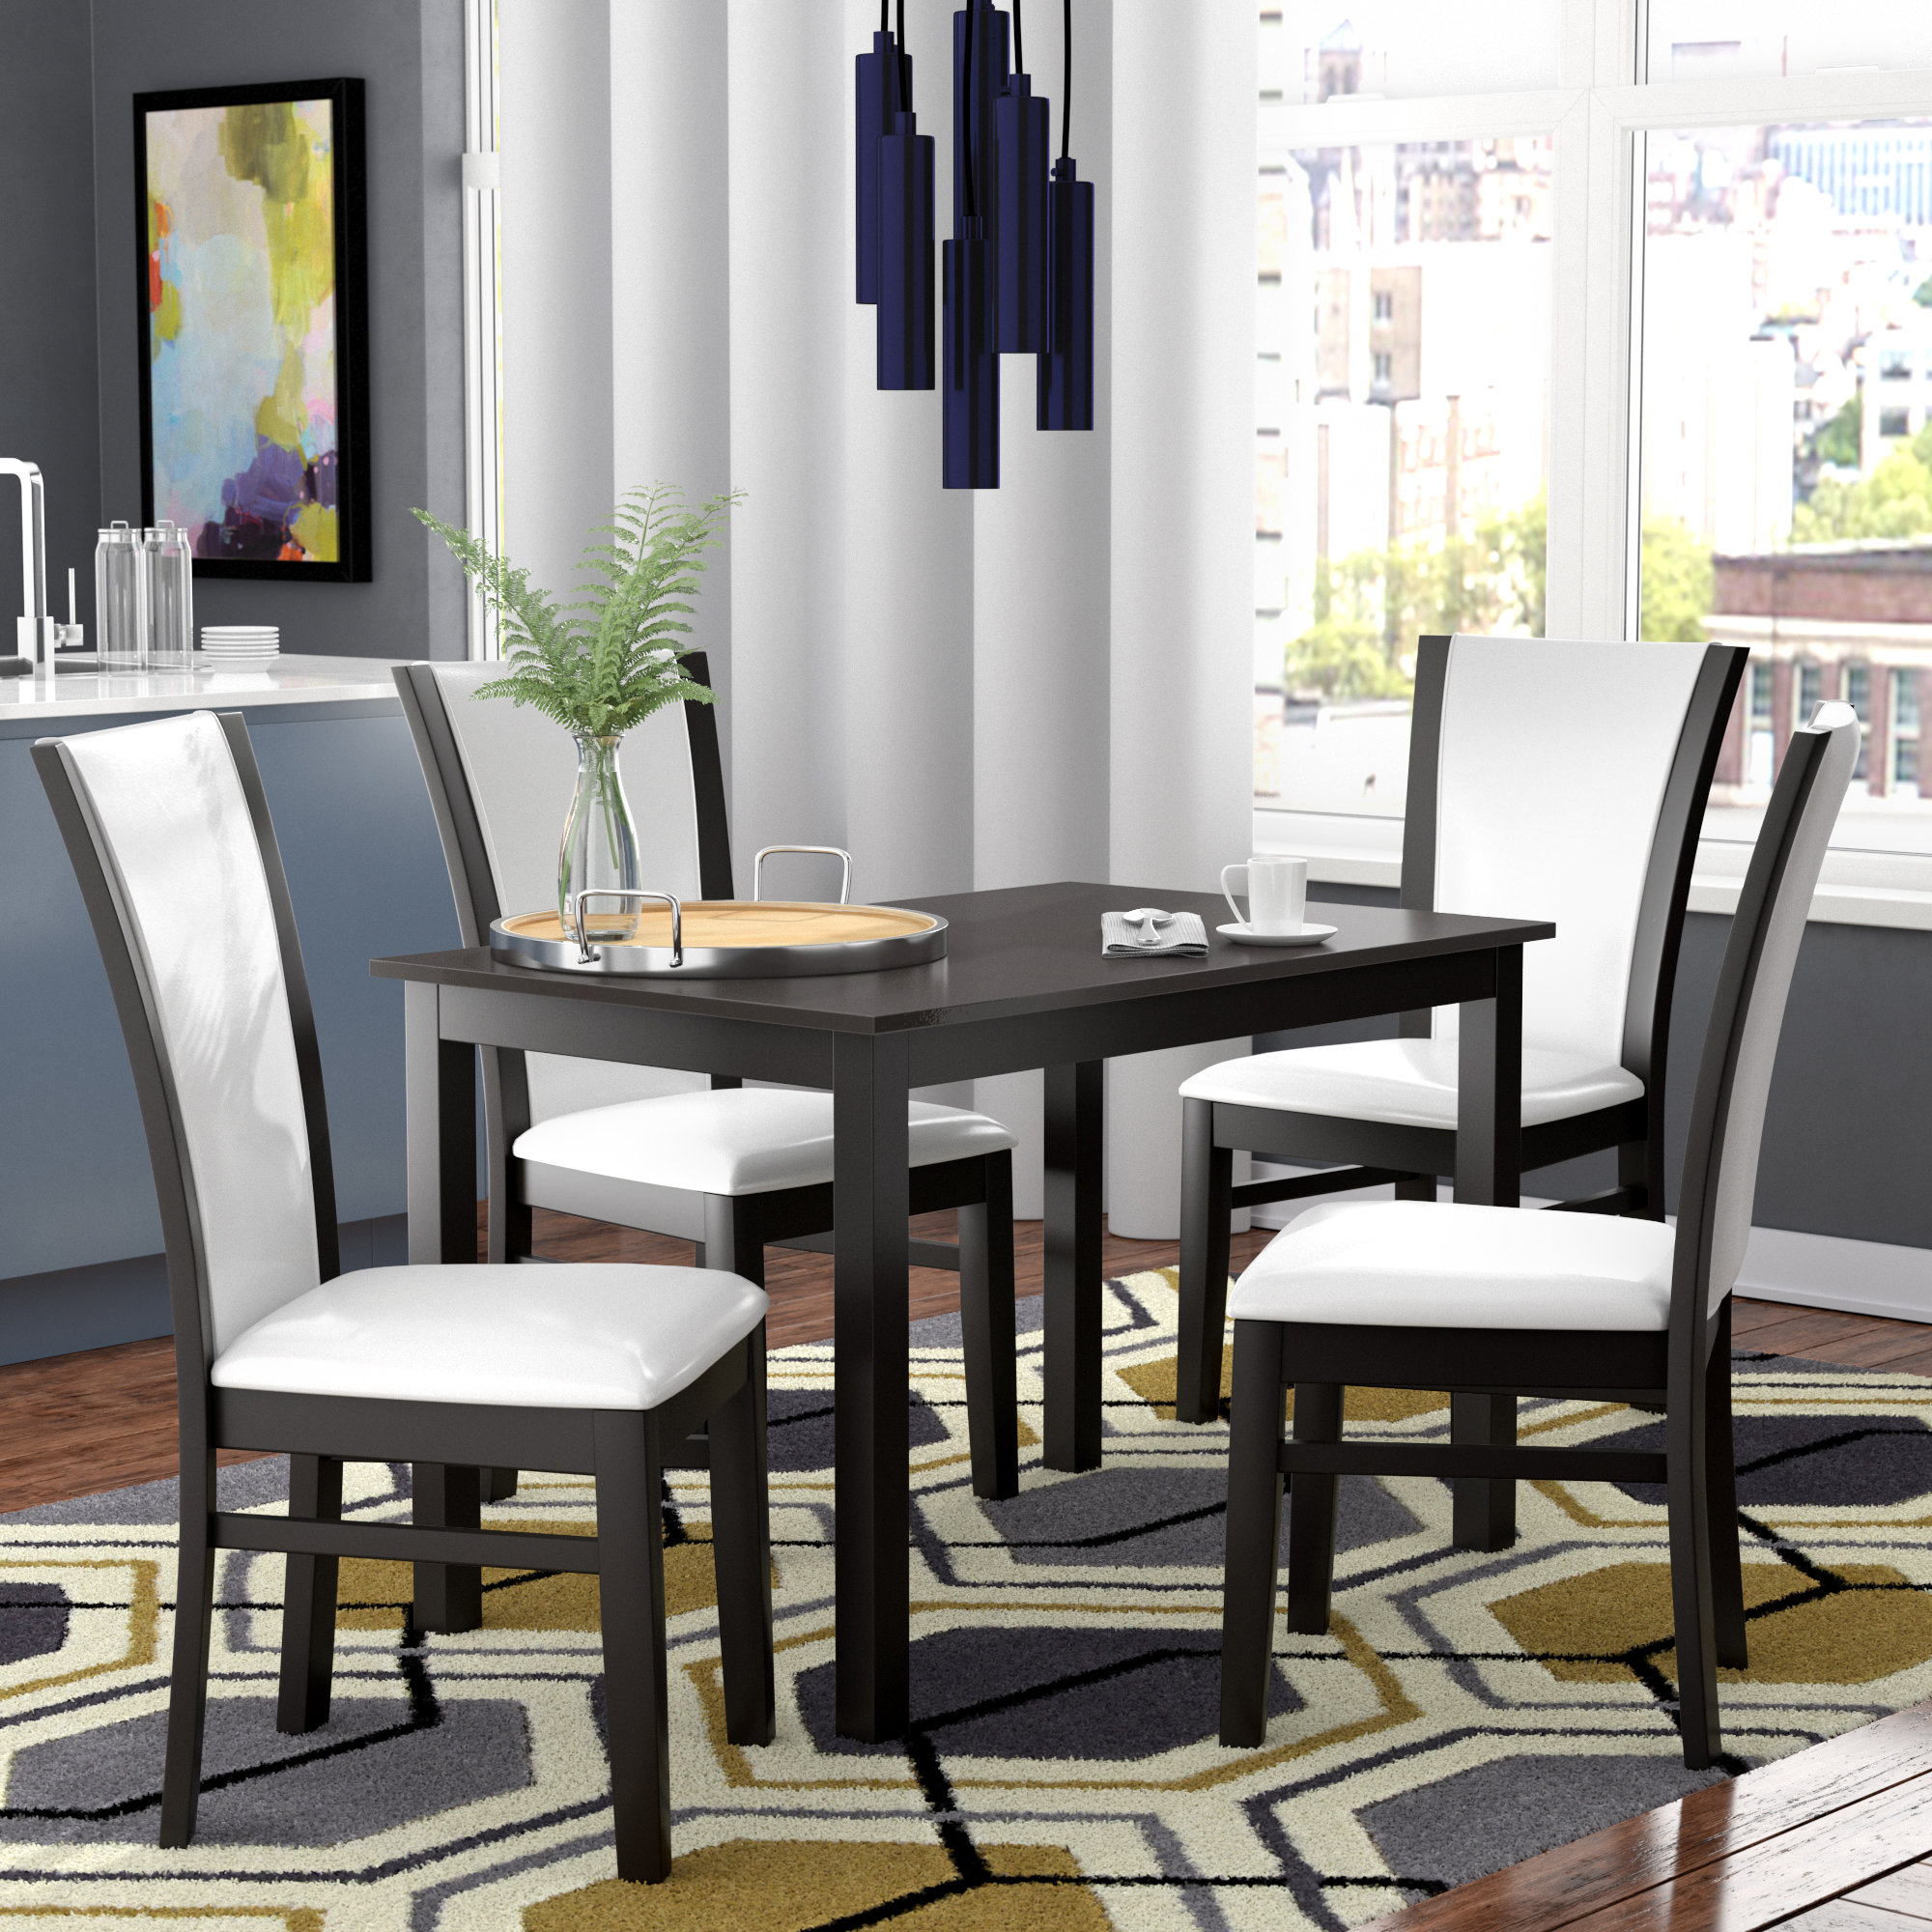 Latest Ontonagon Modern And Contemporary 5 Piece Breakfast Nook Dining Set Pertaining To 5 Piece Breakfast Nook Dining Sets (View 10 of 20)